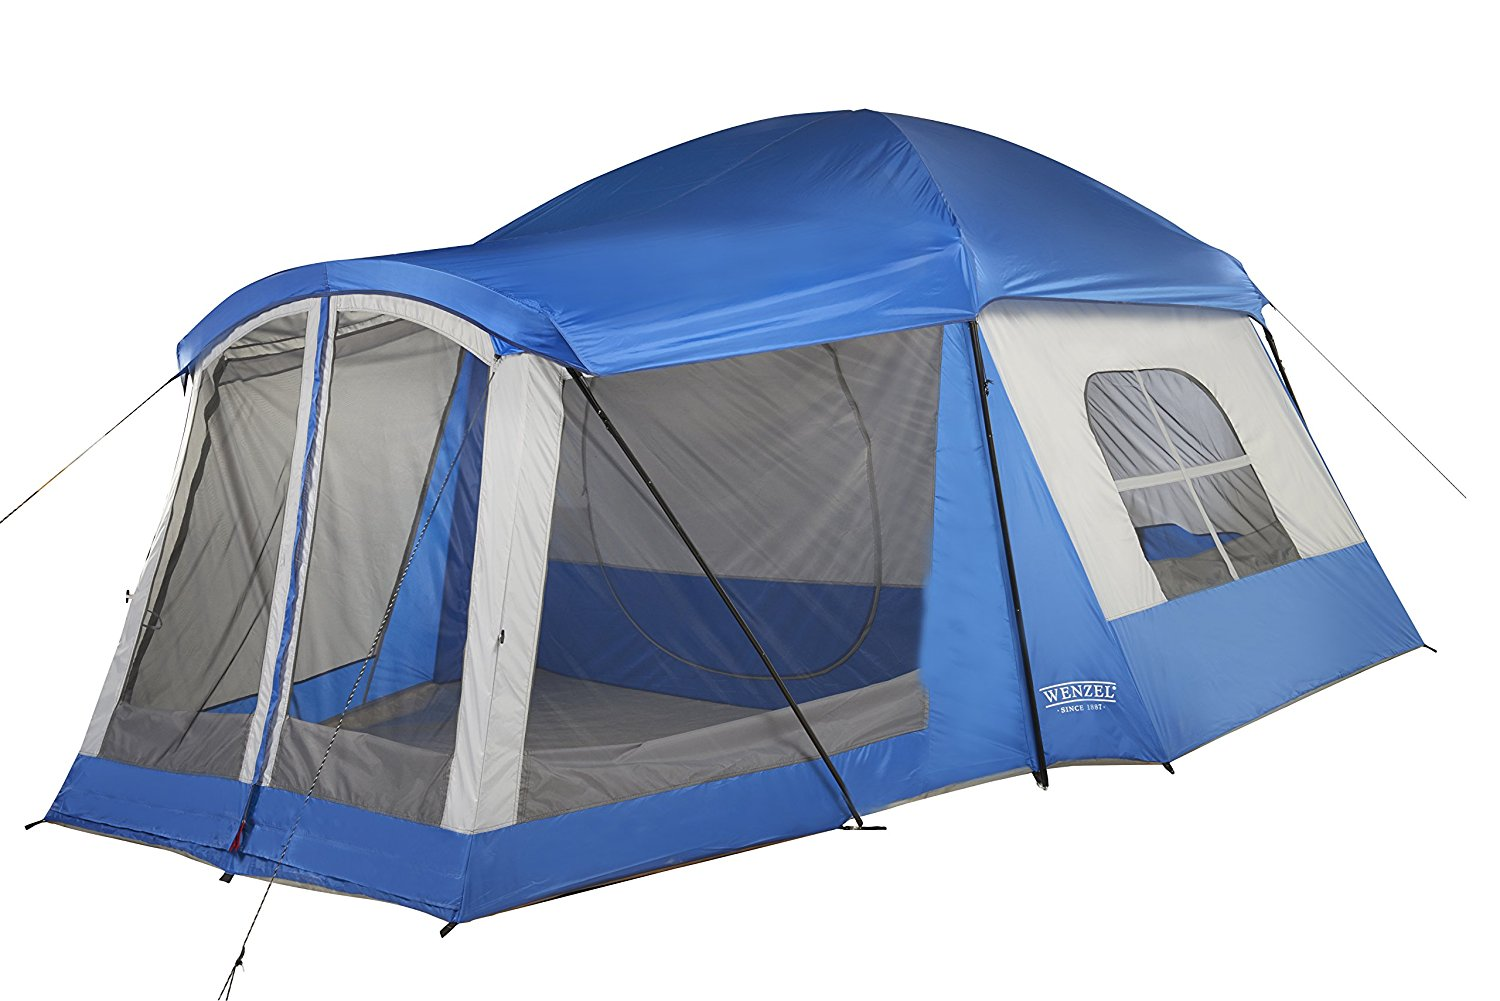 Best Family Tent For Camping in 2018